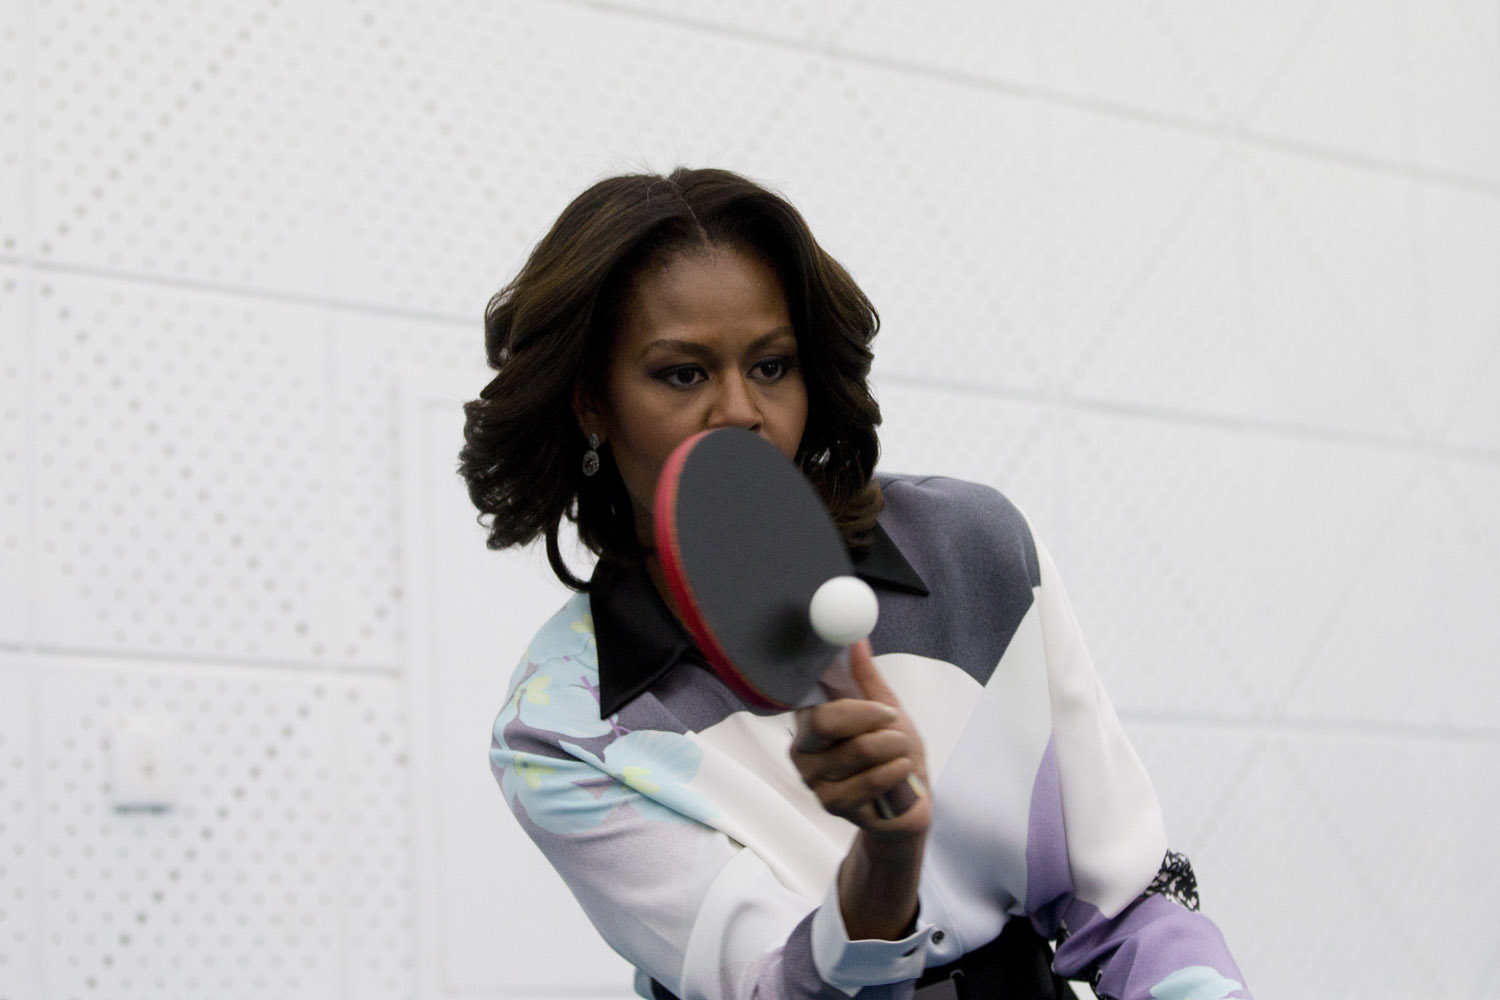 Mar. 21, 2014. US First Lady Michelle Obama plays table tennis as she visit to the Beijing Normal School, a school that prepares students to attend university abroad in Beijing, China.